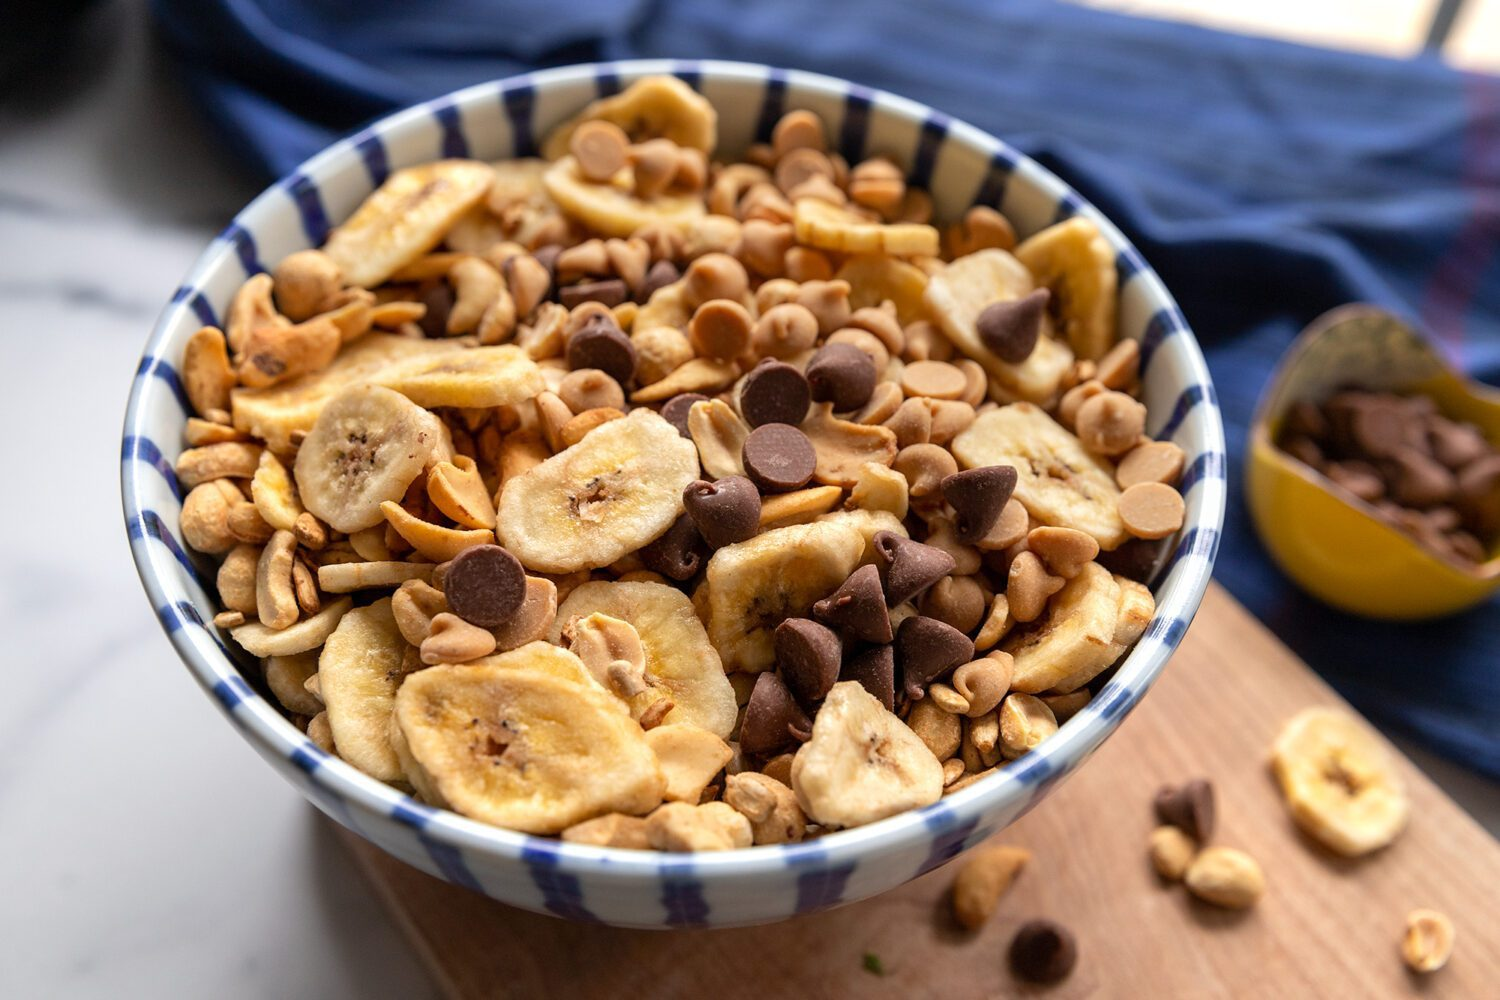 banana peanut butter and chocolate trail mix